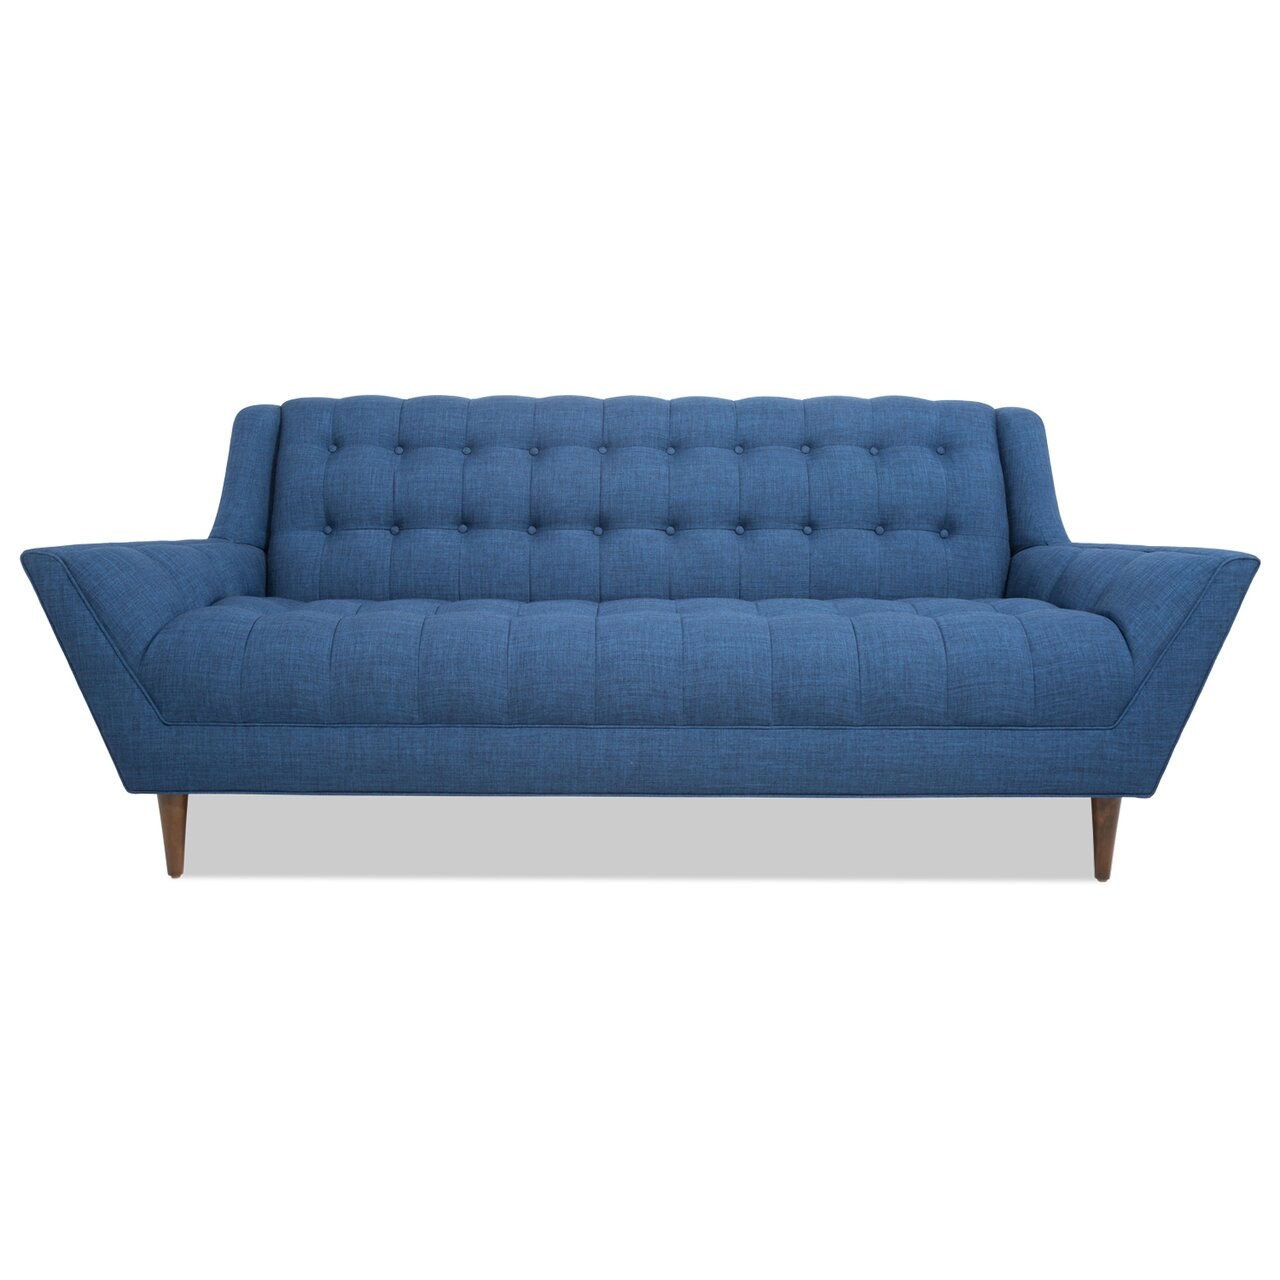 Discount modern sofas designer sectional sofas discount sofa design discount modern furniture for Cheap new furniture